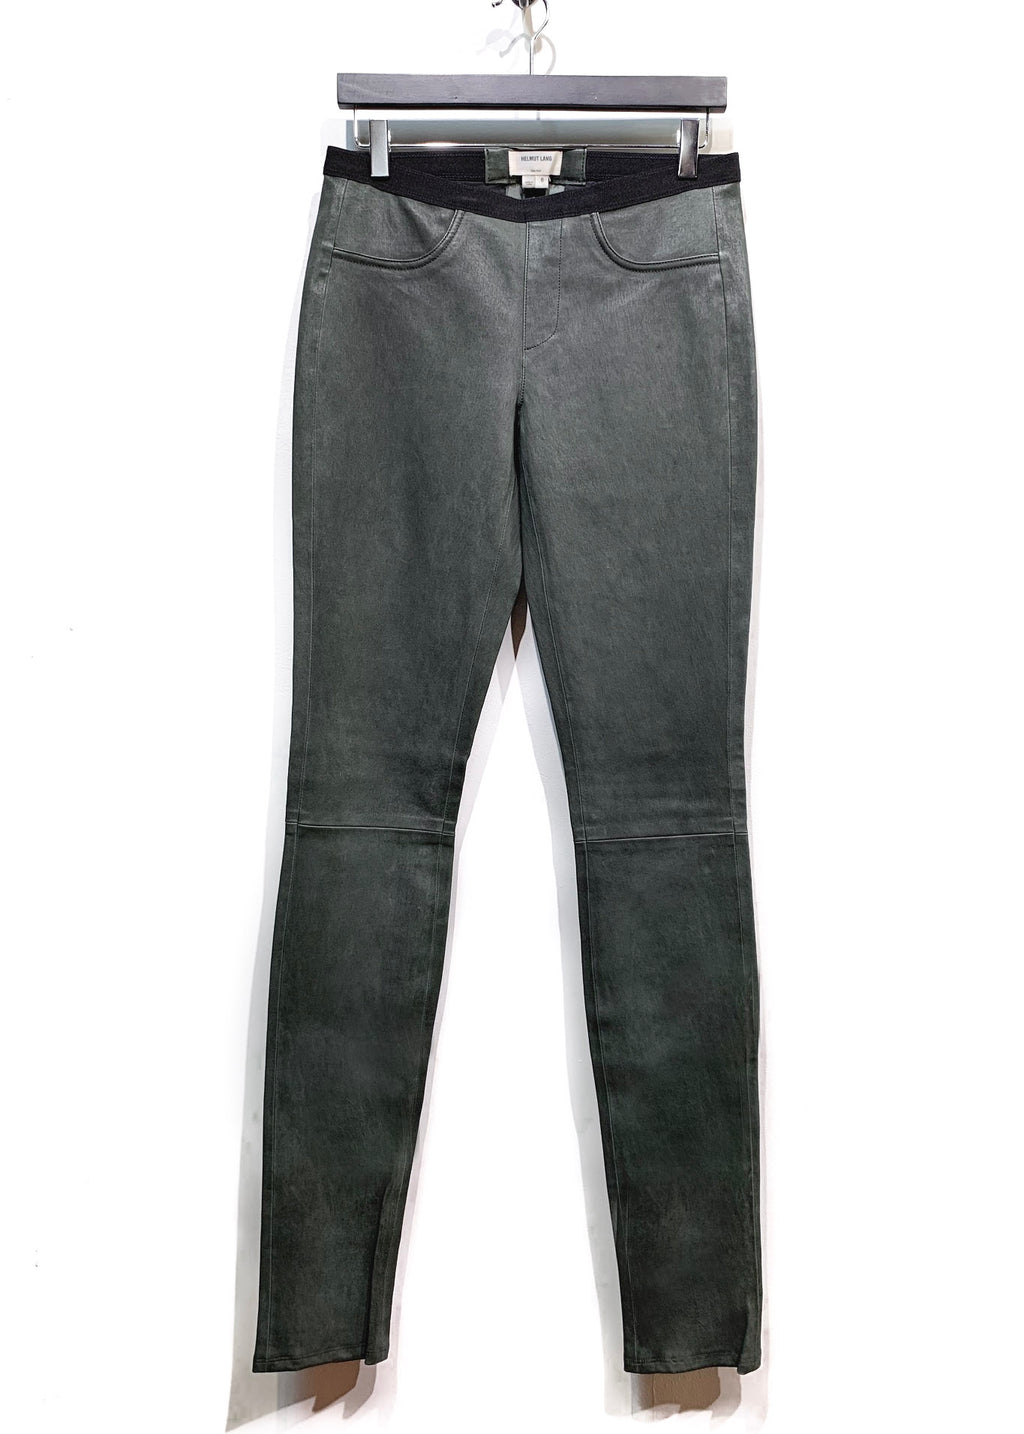 Helmut Lang Khaki Green Stretch Leather Legging Trousers